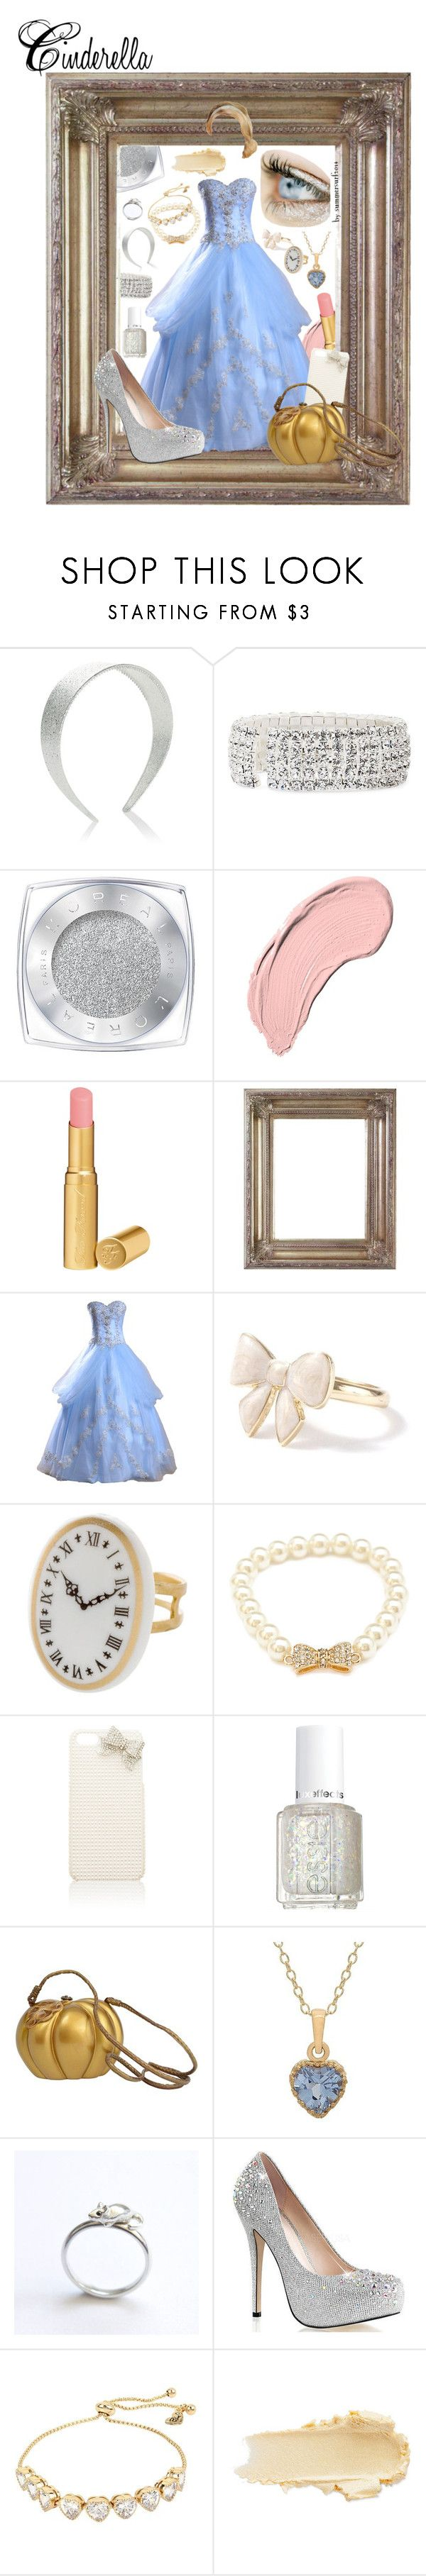 """""""Cinderella Prom"""" by summersurf2014 ❤ liked on Polyvore featuring Accessorize, Vieste Rosa, L'Oréal Paris, NYX, Too Faced Cosmetics, Forever 21, Forever New, Essie, Timmy Woods and TIARA"""